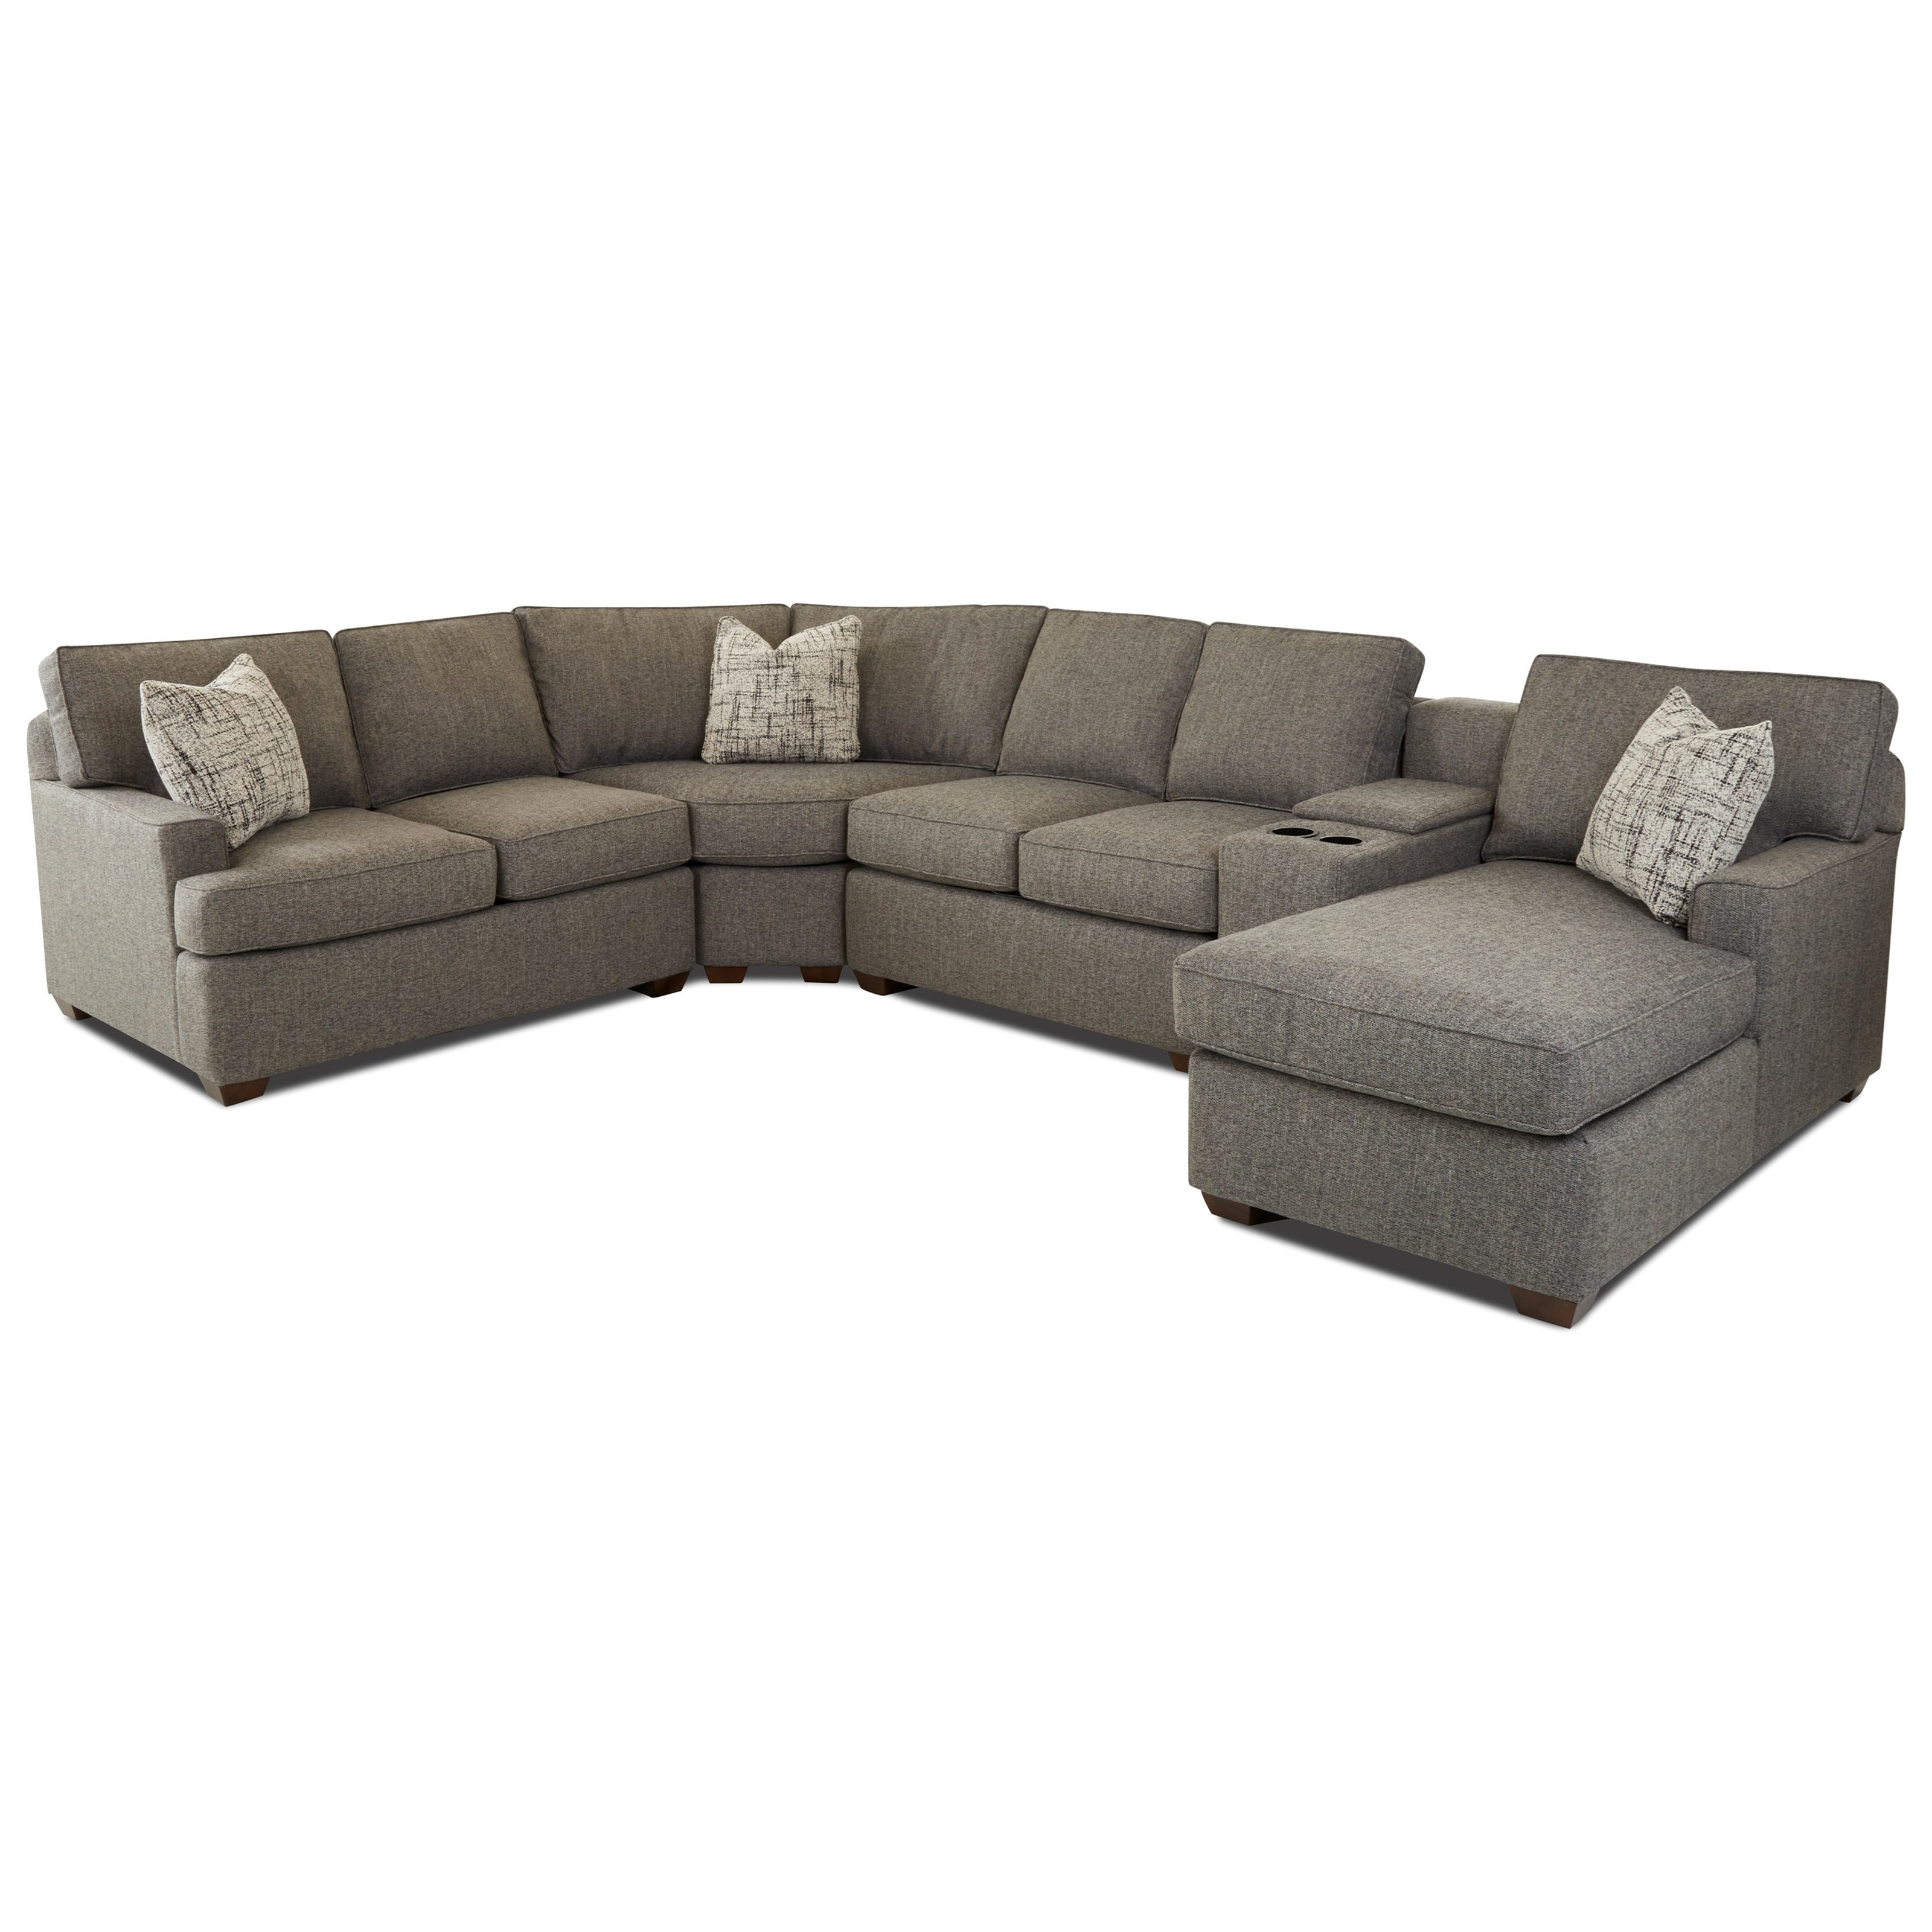 Pantego 5-Piece Sectional by Klaussner at Johnny Janosik